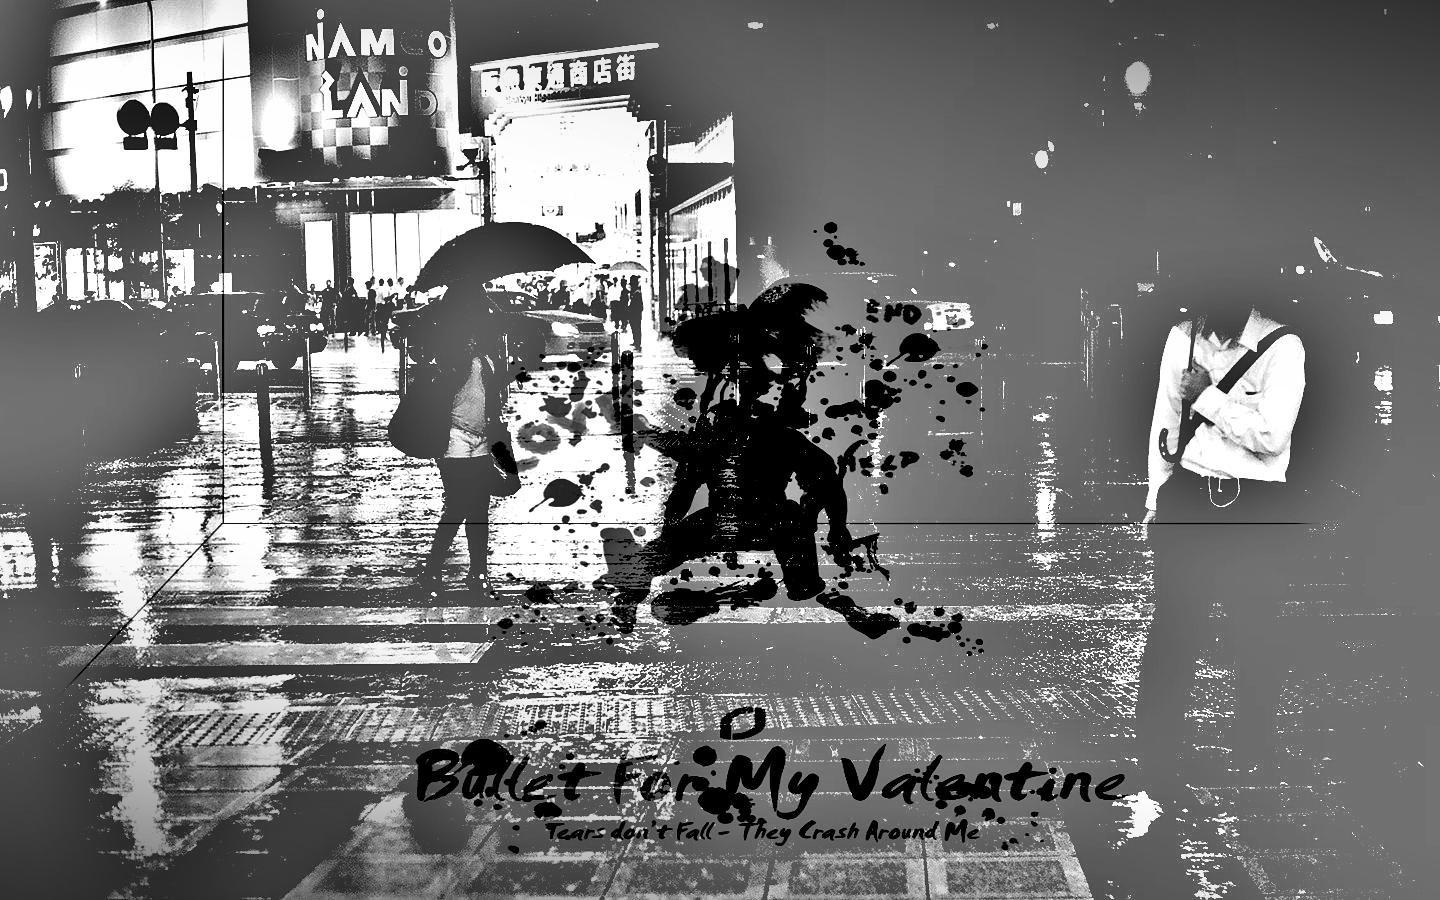 Bullet For My Valentine Wallpaper Iphone ✓ Labzada